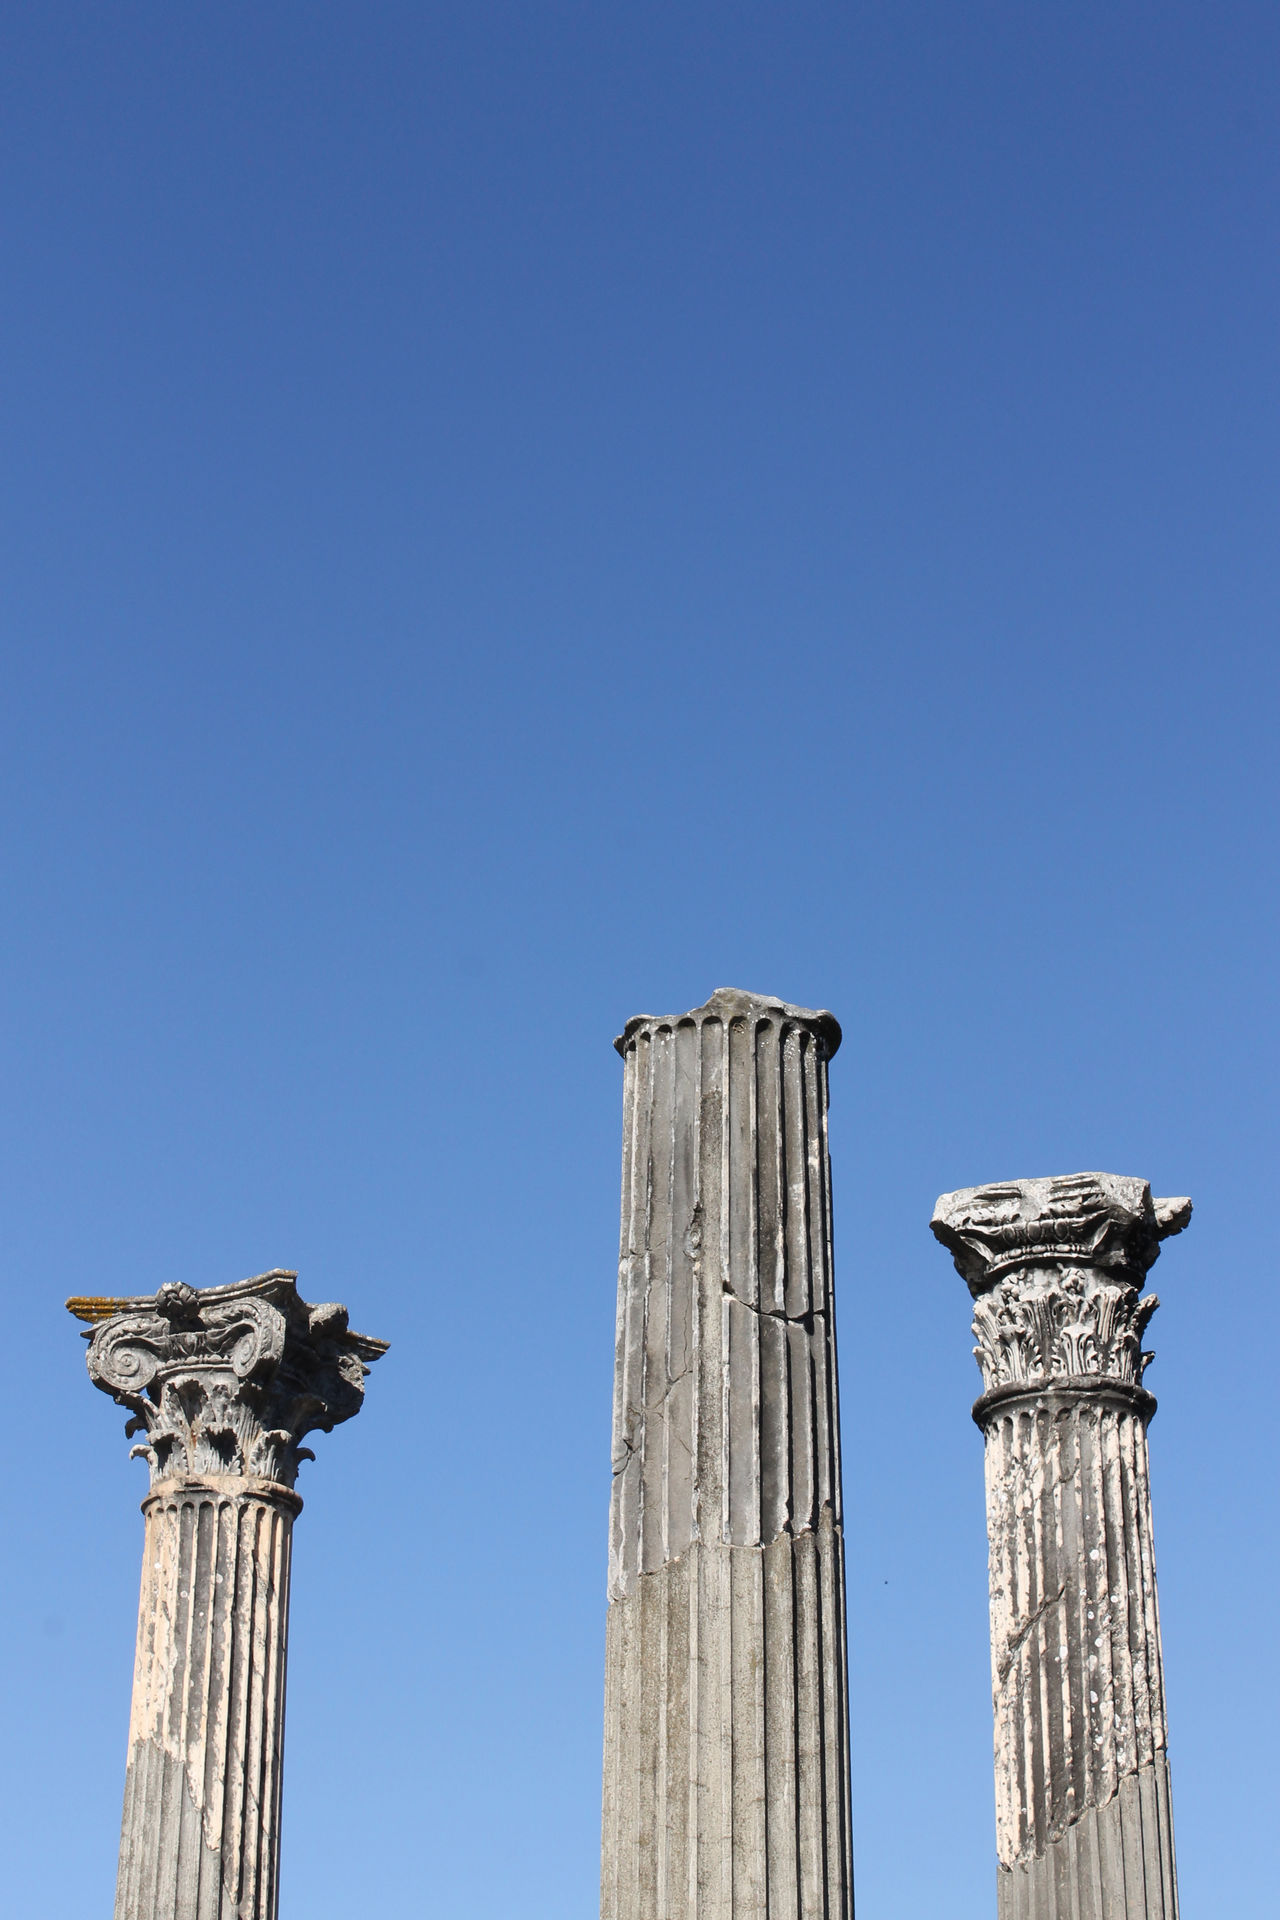 Three of us Ancient Ancient Architecture Ancient Roman Ancient Rome Ancient Ruins Architectural Column Architecture Architecturelovers Architecturephotography Architectureporn Clear Sky Day Daylight Daylight Photography History History Architecture Italy No People Outdoors Ruins Ruins Architecture Skyphotography Skyporn Tivoli Villa Adriana